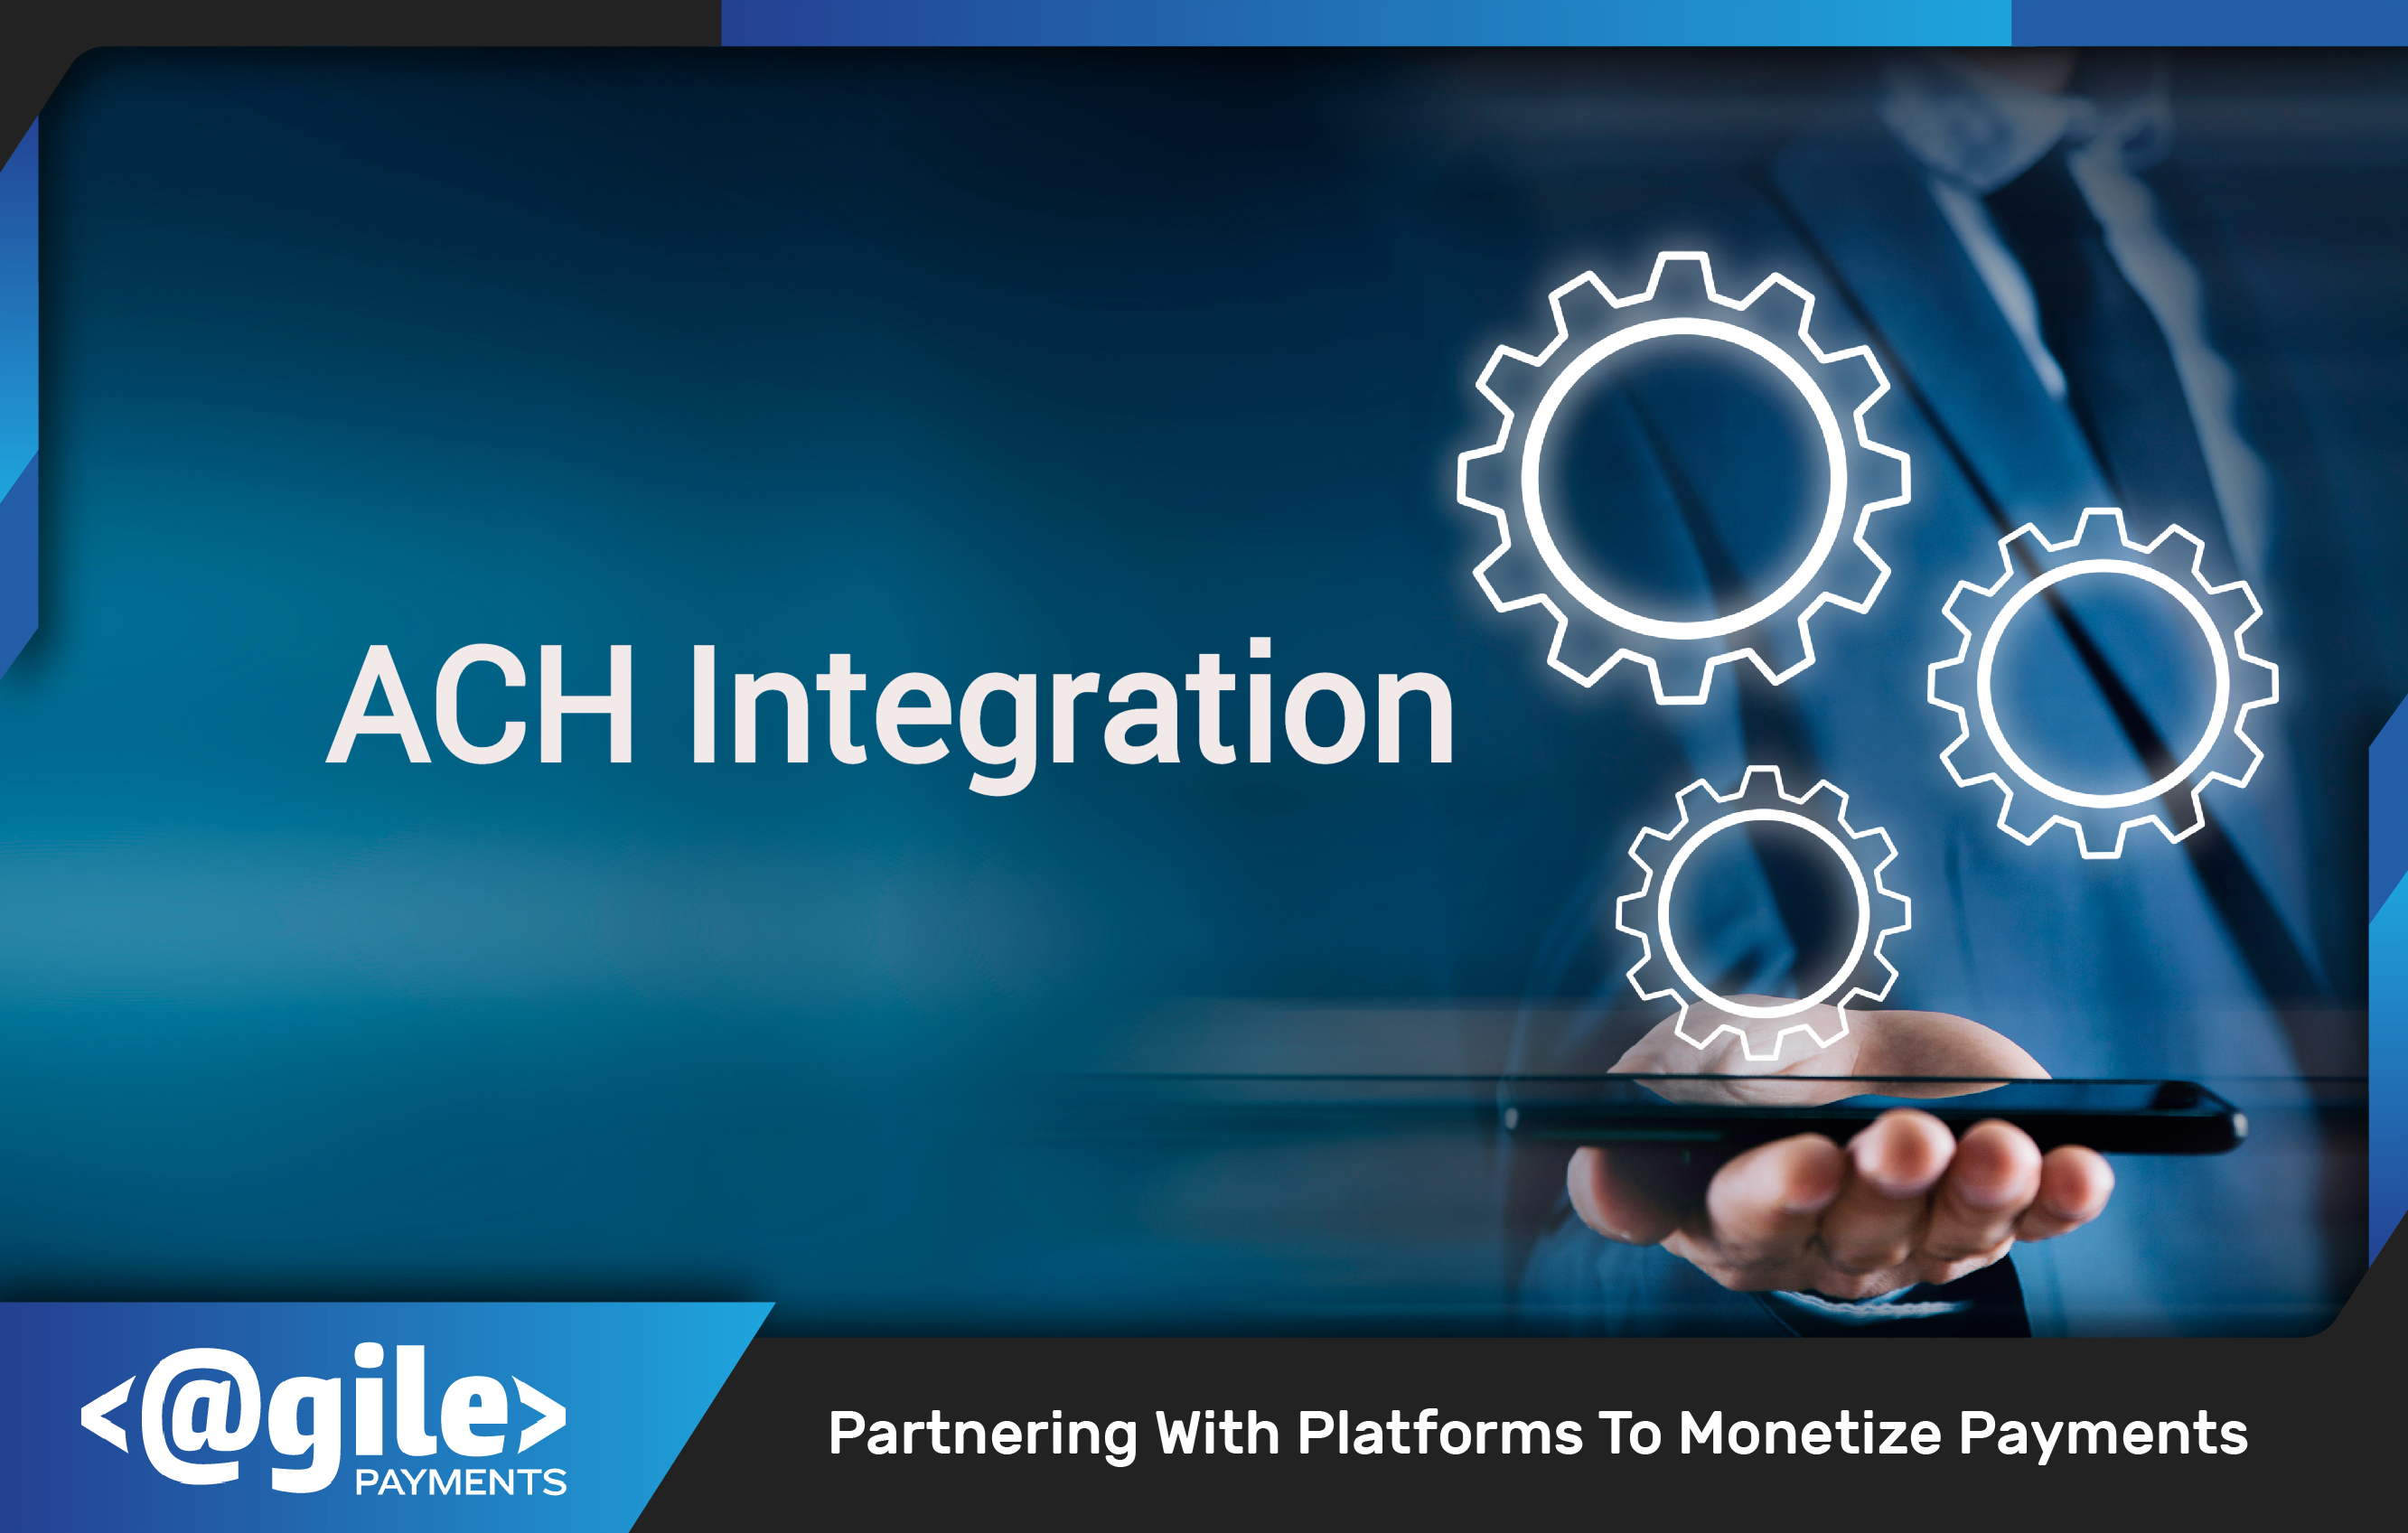 ACH Integration from Agile Payments